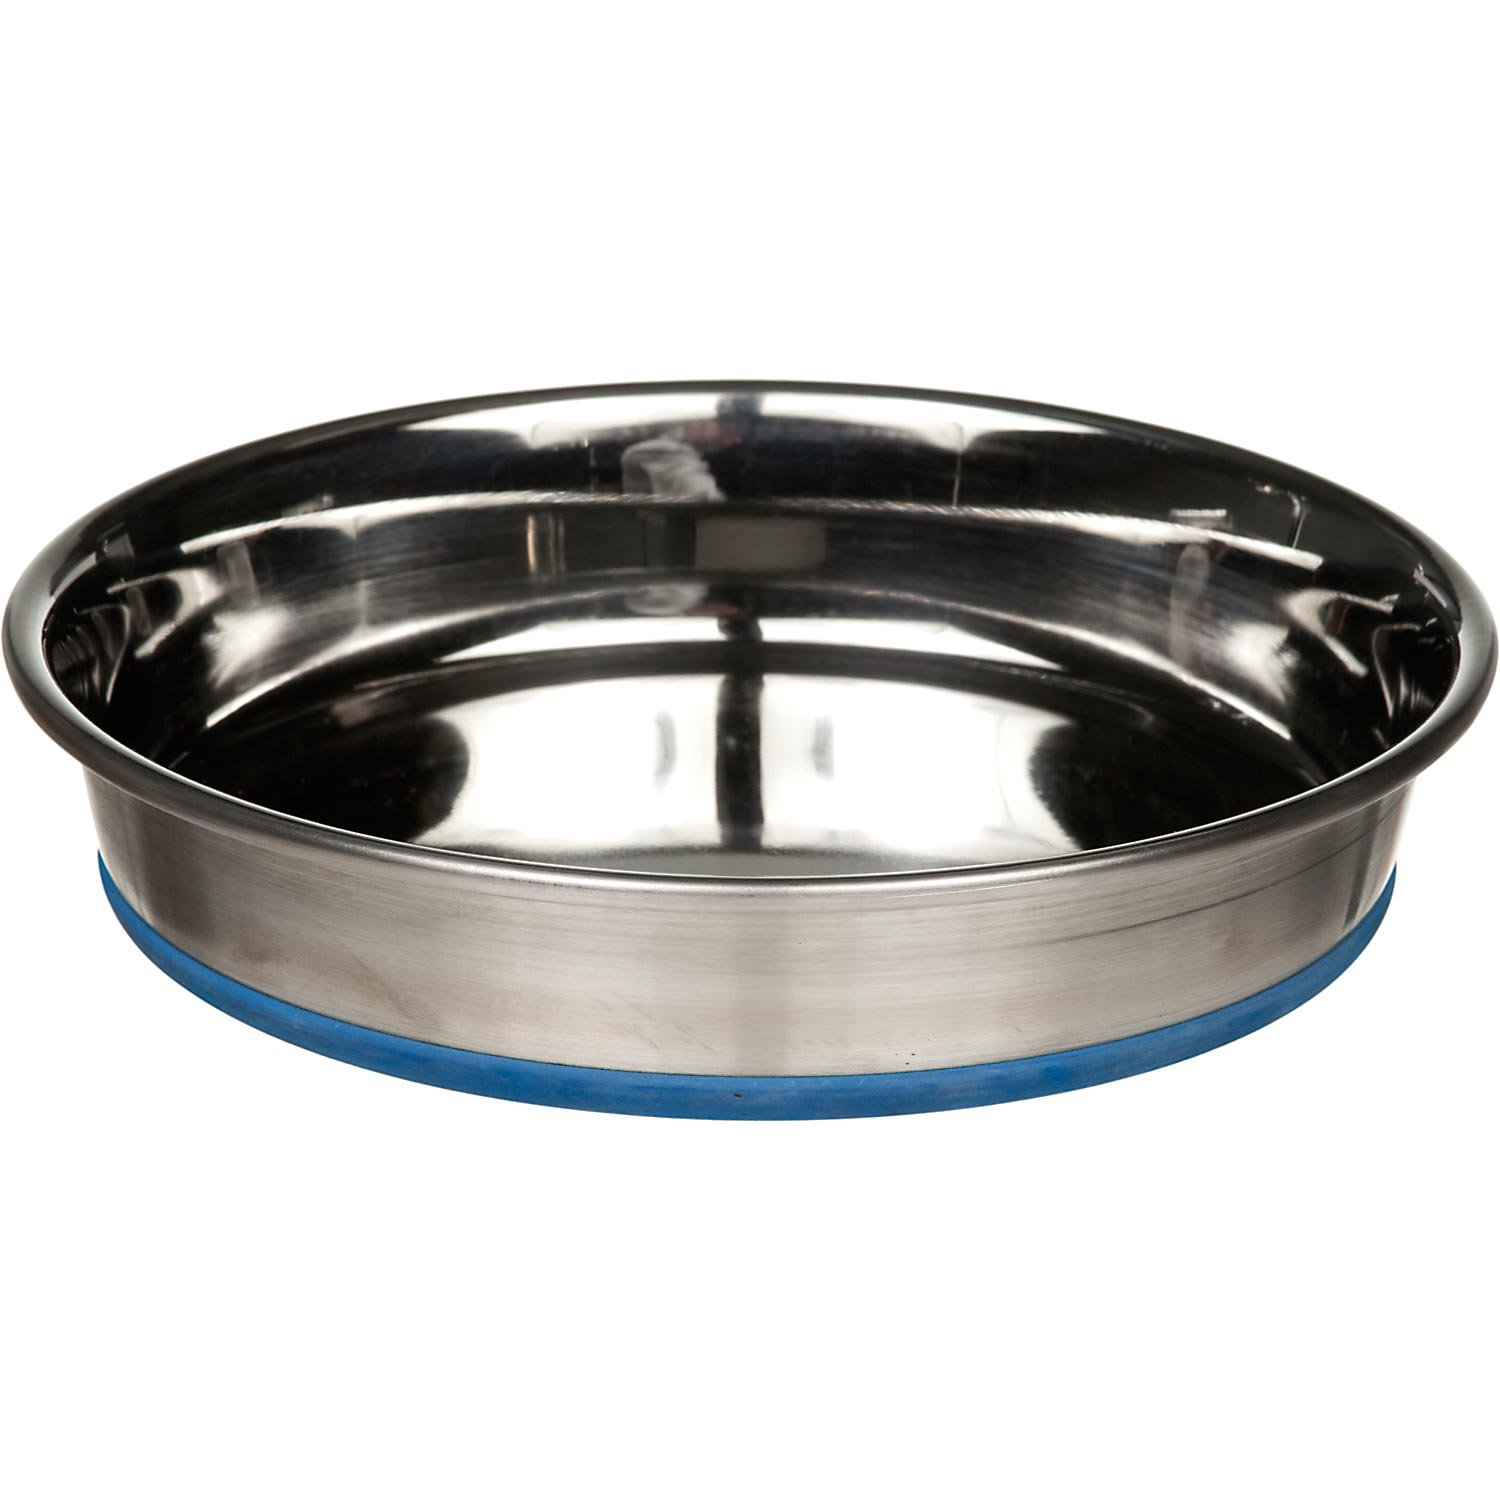 Our Pet's Durapet Stainless Steel Cat Bowl